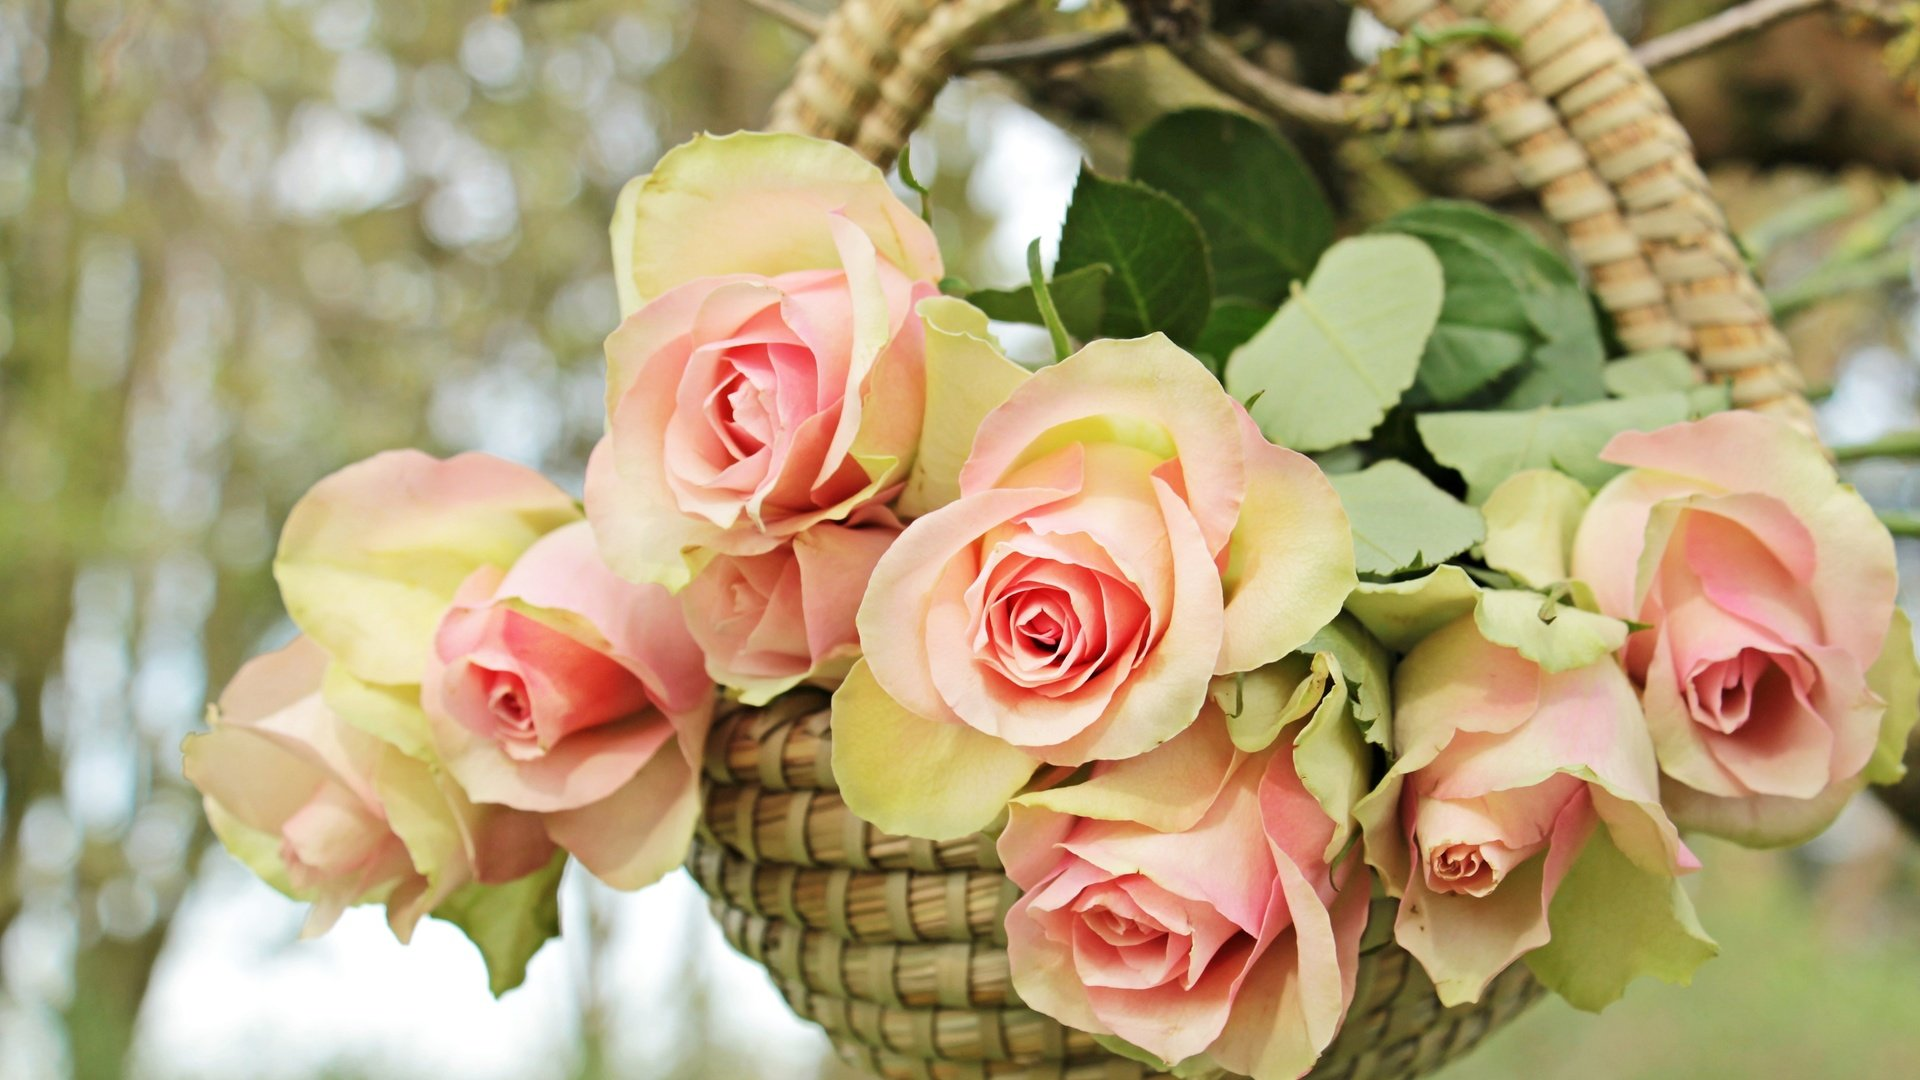 Basket With Flowers image hd